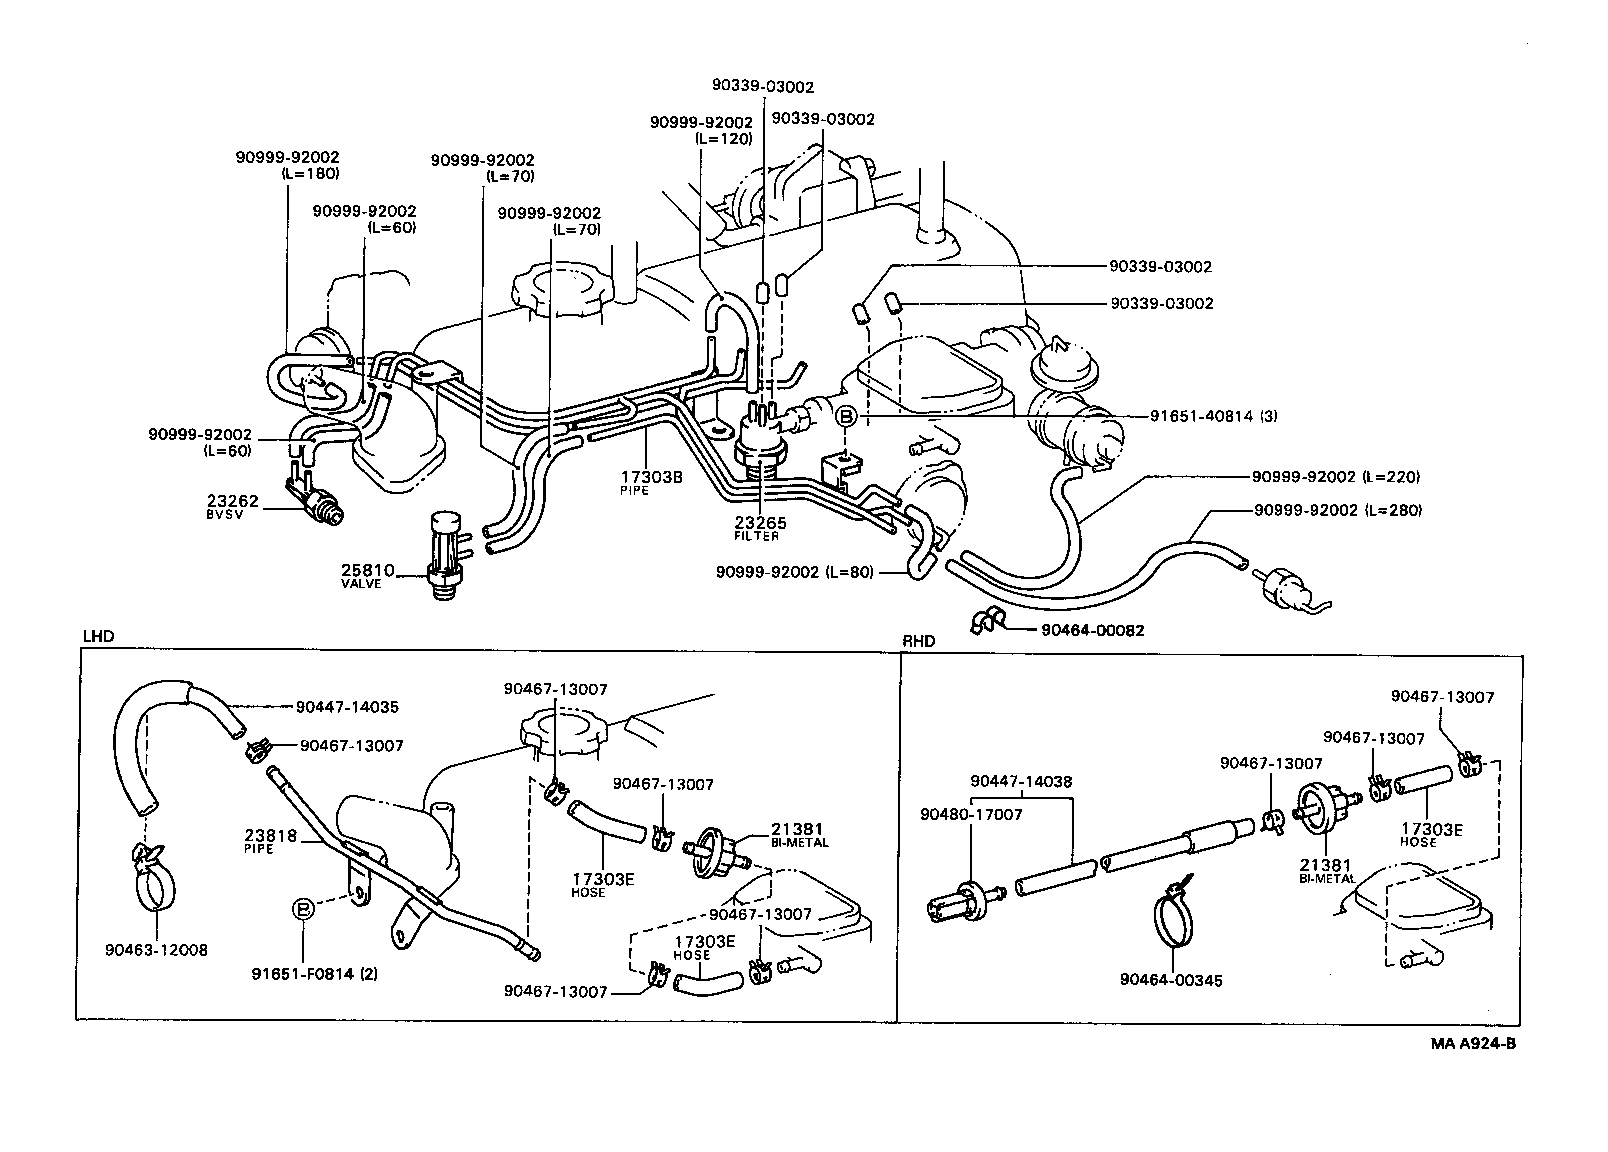 2000 toyota camry parts diagram dodge ignition wiring hilux 4runneryn106l-prmrs - tool-engine-fuel vacuum piping | japan eu